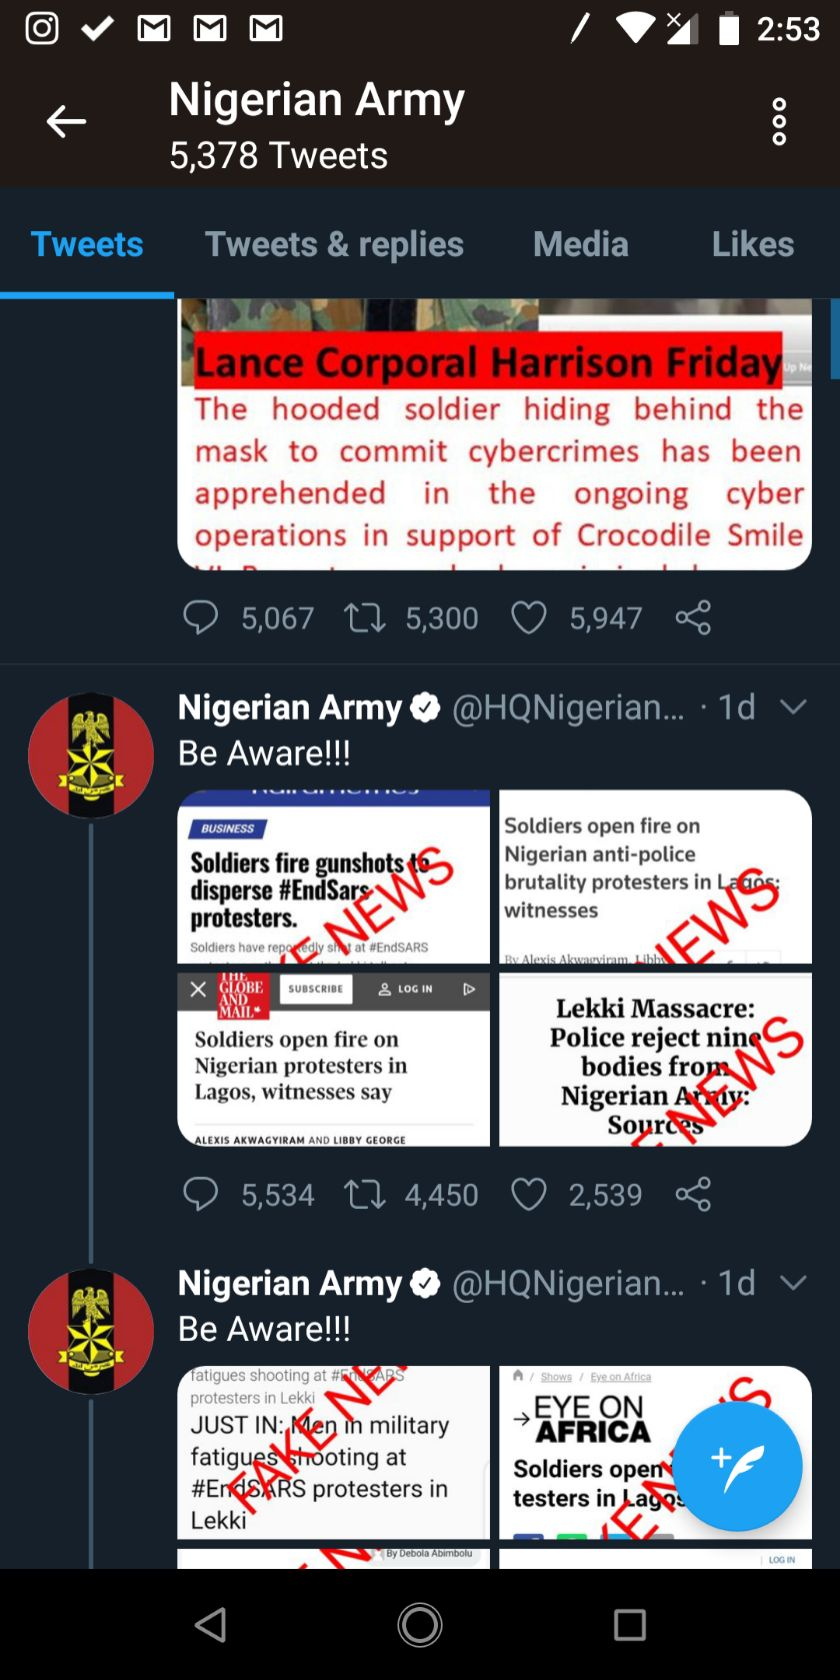 #EndSars The Nigeria army Keep on Lying about the Shooting of peaceful protesters, calling it fake news